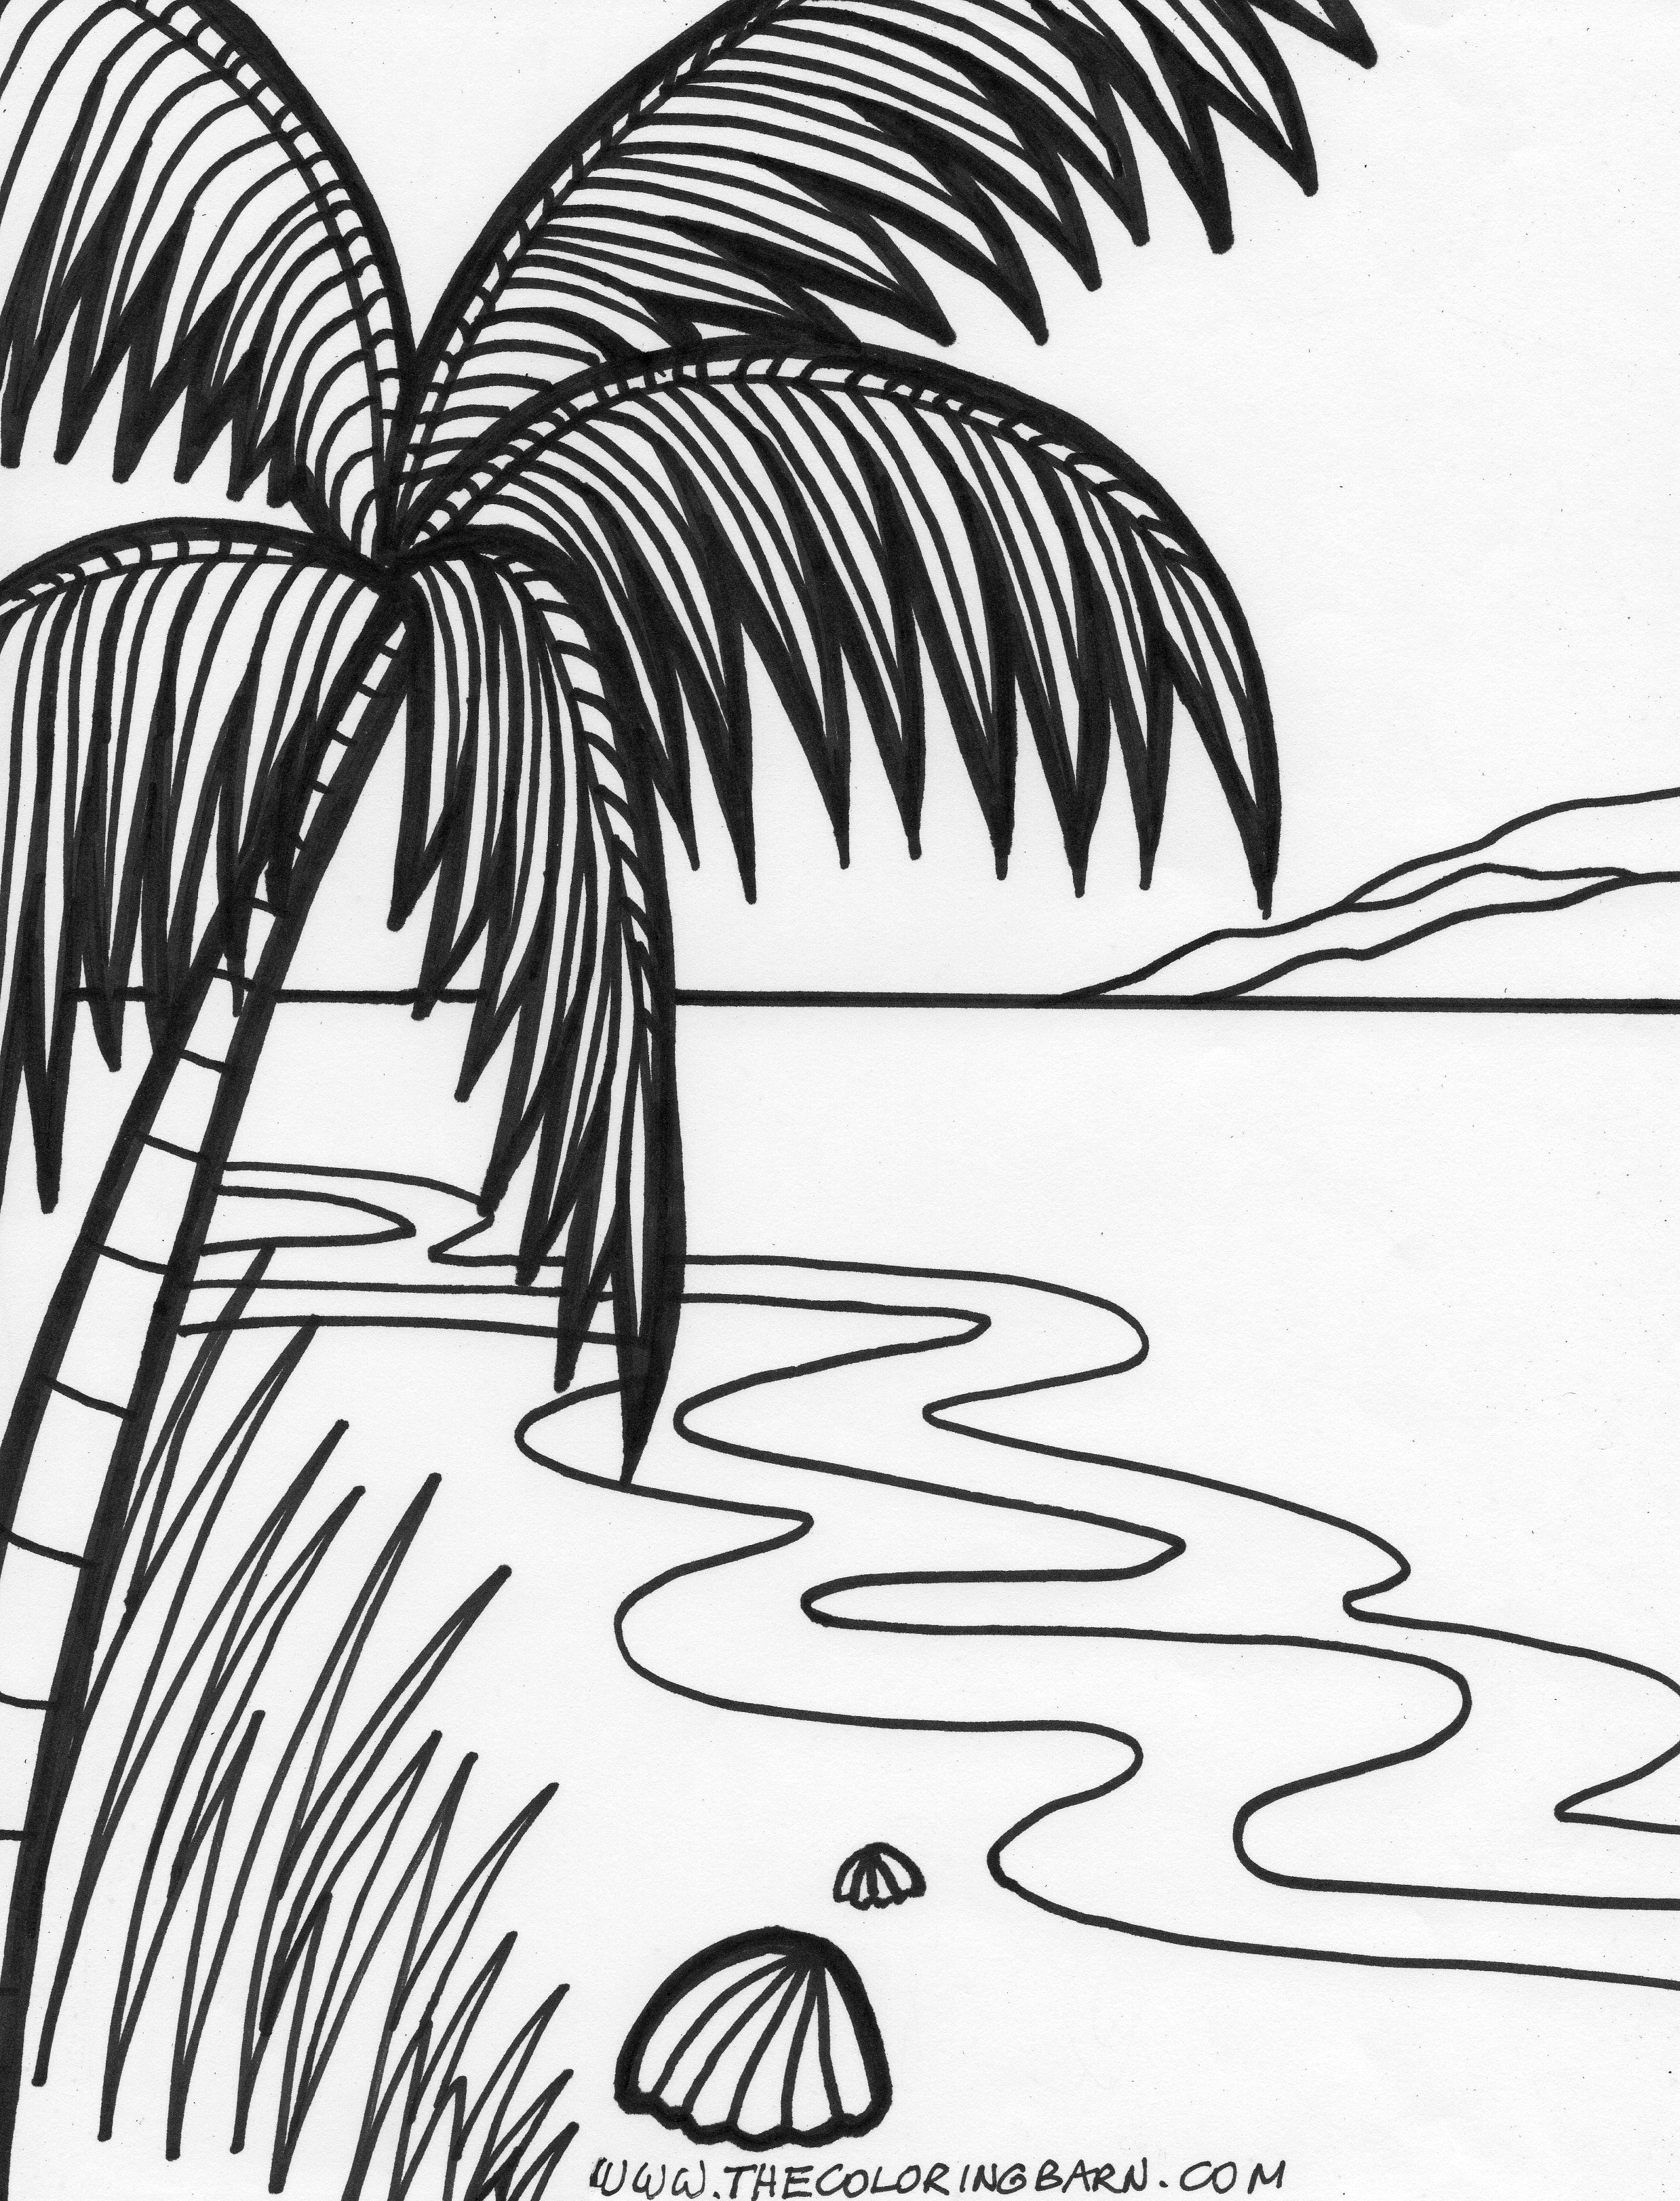 Island Coloring 3 Jpg 2477 3245 Beach Coloring Pages Coloring